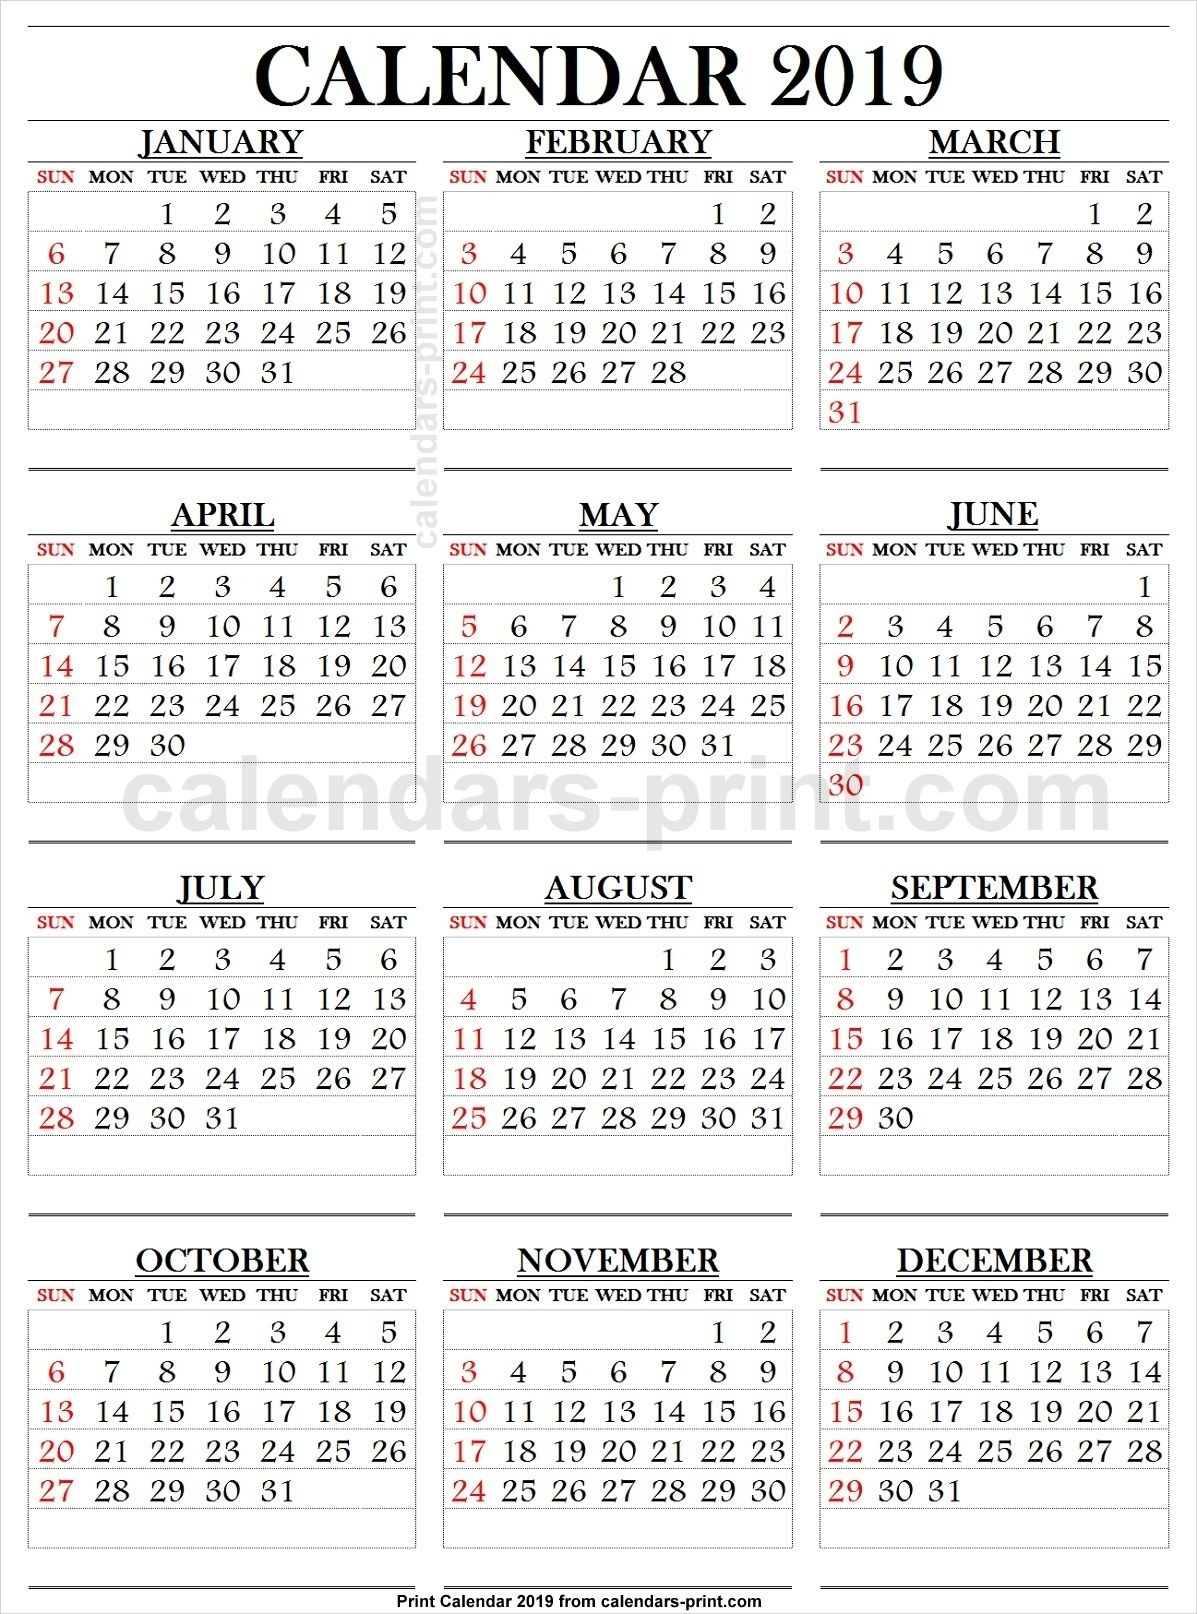 2019 Calendar Large Numbers | 2019 Yearly Calendar | Pinterest